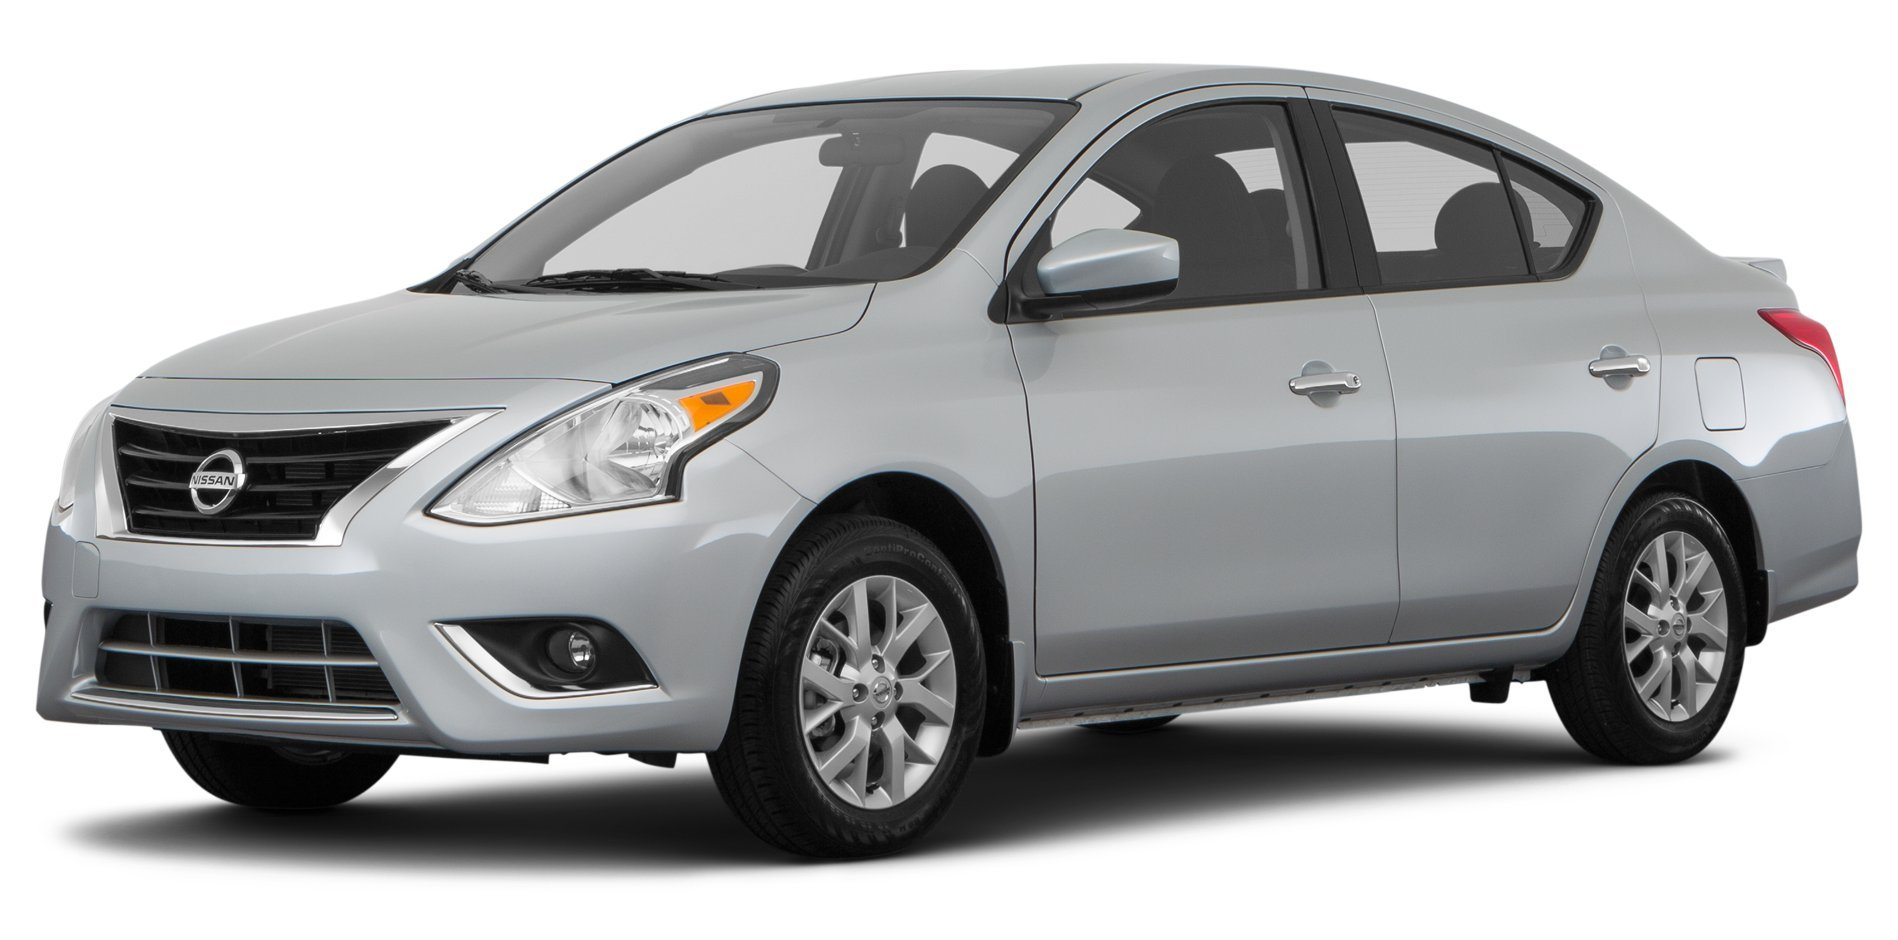 2017 toyota yaris ia reviews images and specs vehicles. Black Bedroom Furniture Sets. Home Design Ideas